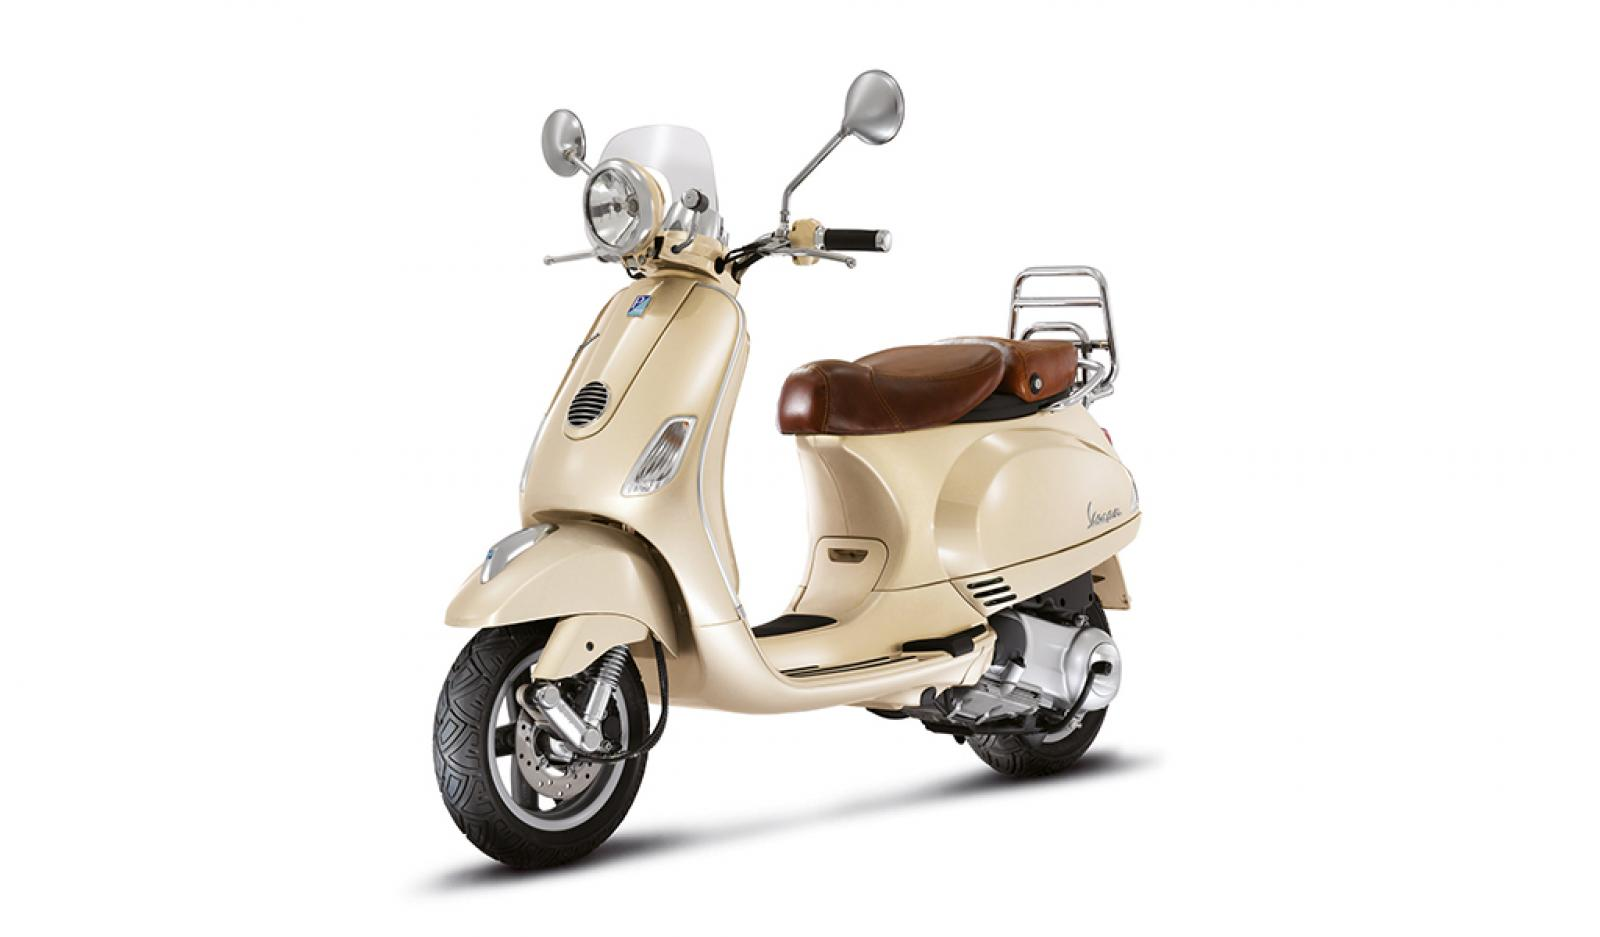 Vespa lxv photo - 7